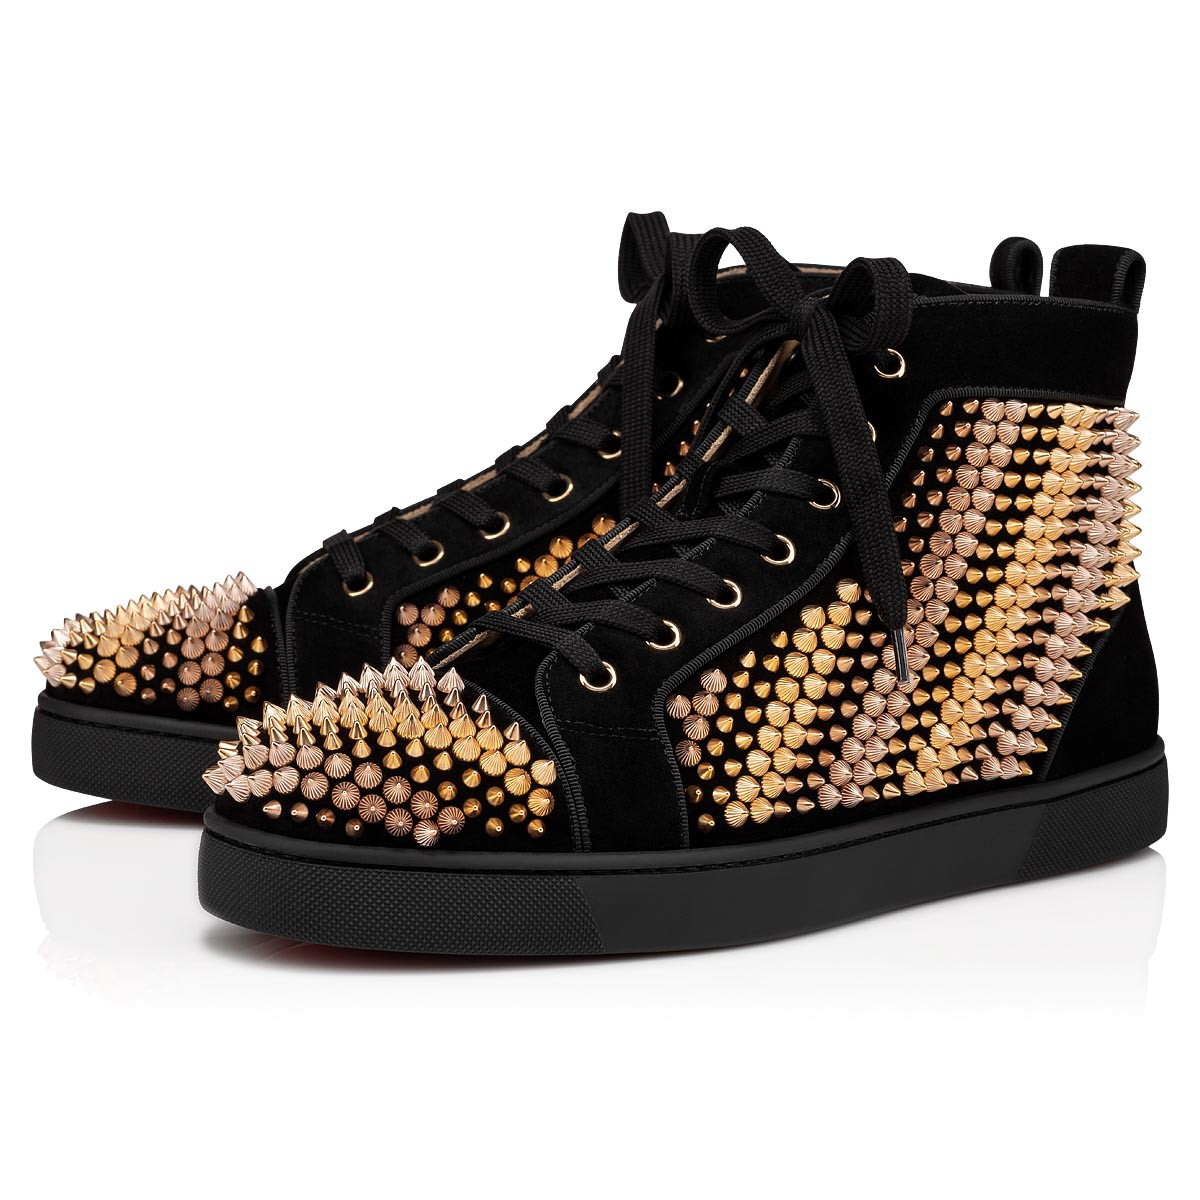 Shoes - Galvalouis - Christian Louboutin